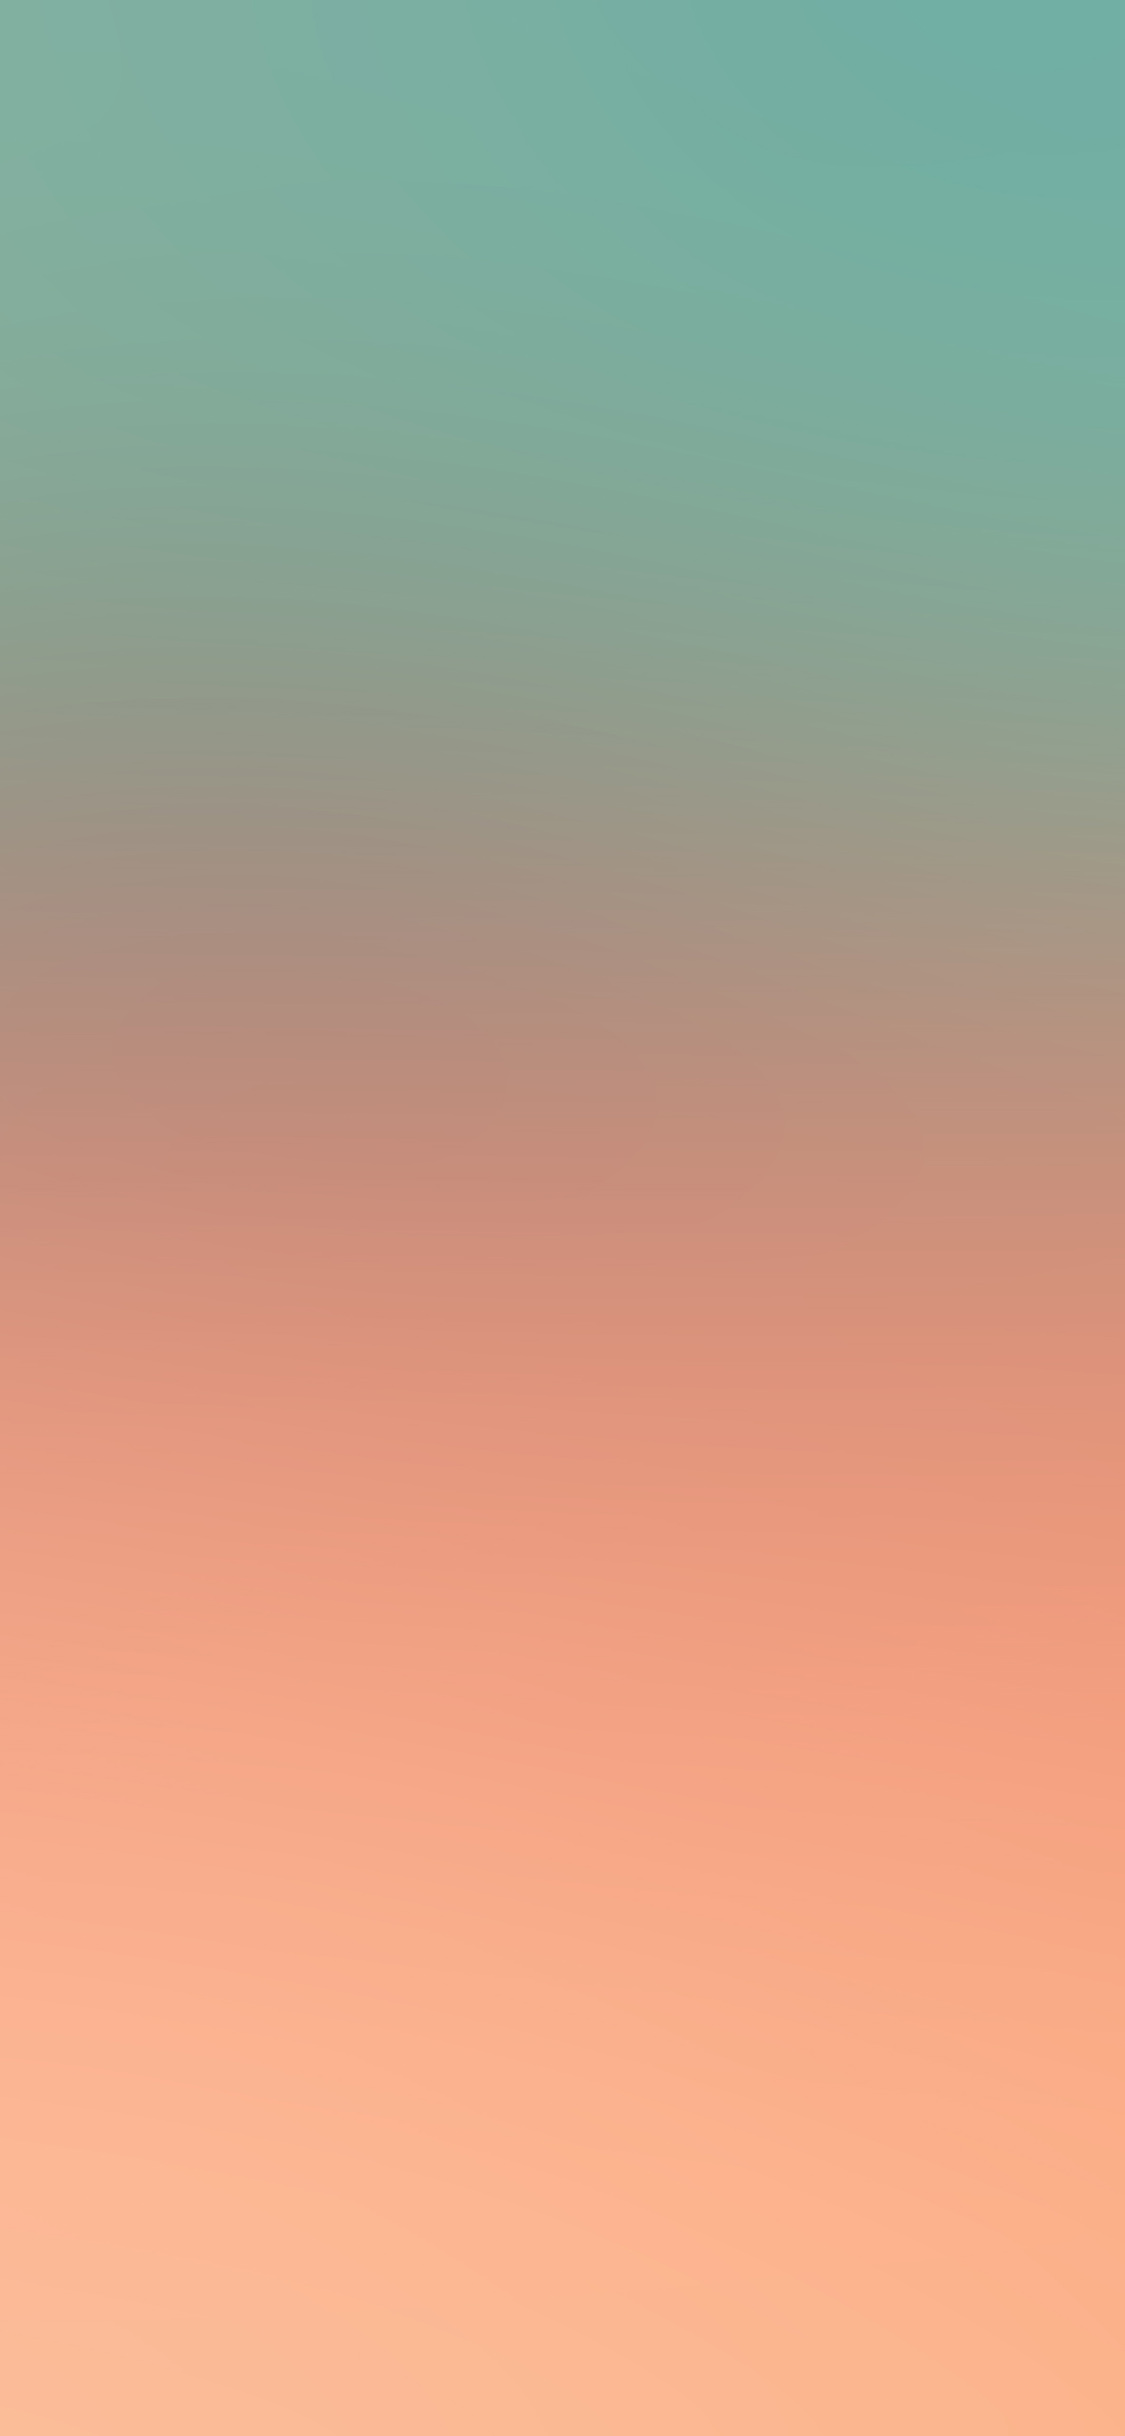 iPhoneXpapers.com-Apple-iPhone-wallpaper-si52-green-orange-soft-pastel-gradation-blur